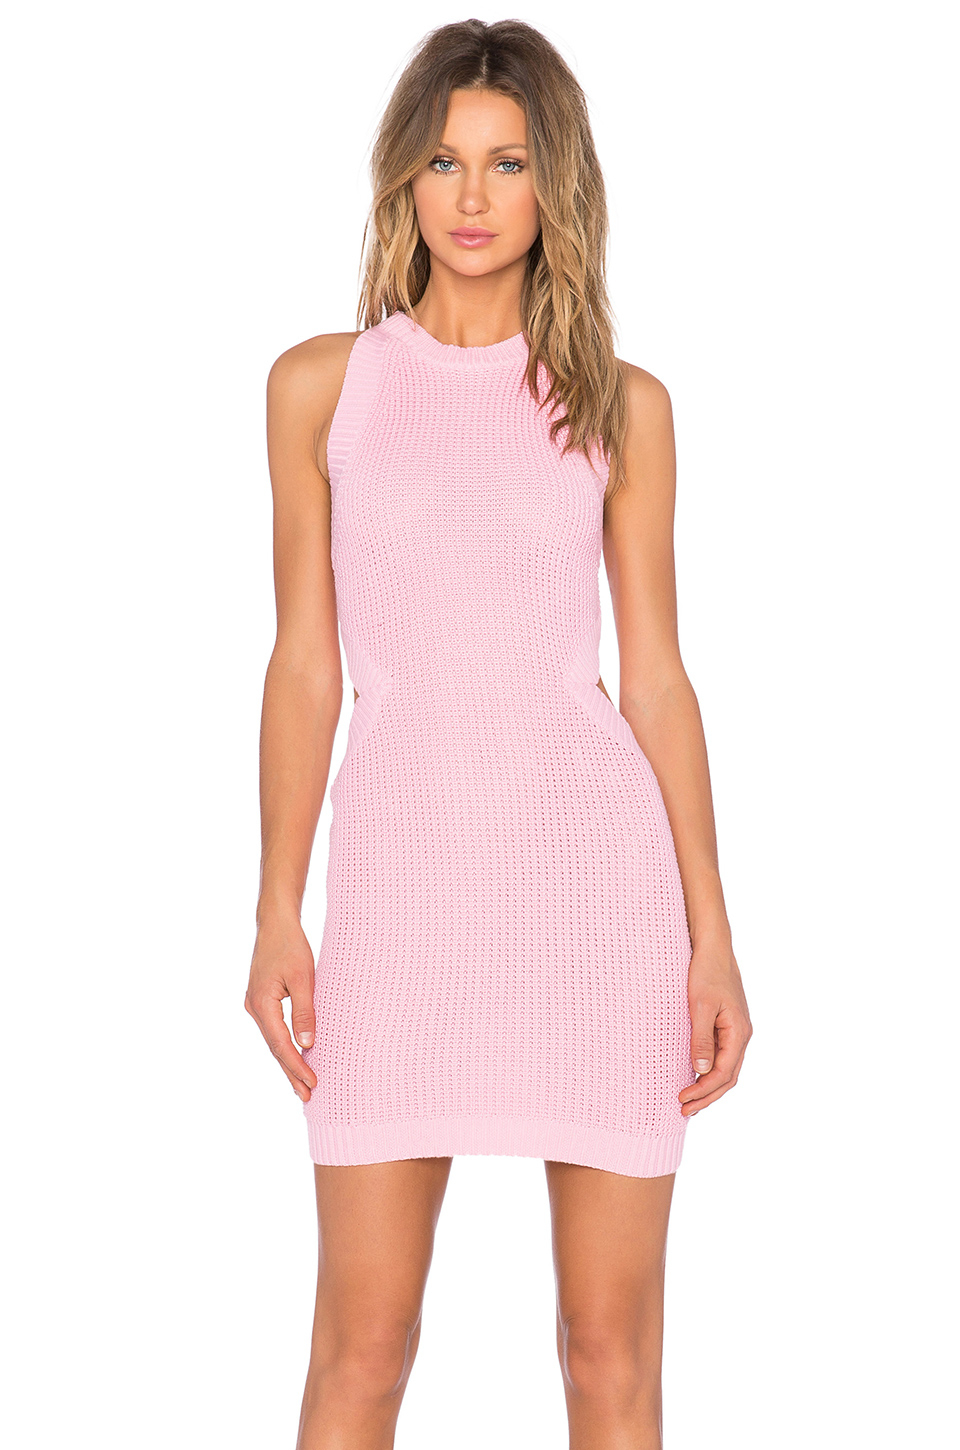 Endless rose Cut Out Knit Dress in Pink | Lyst